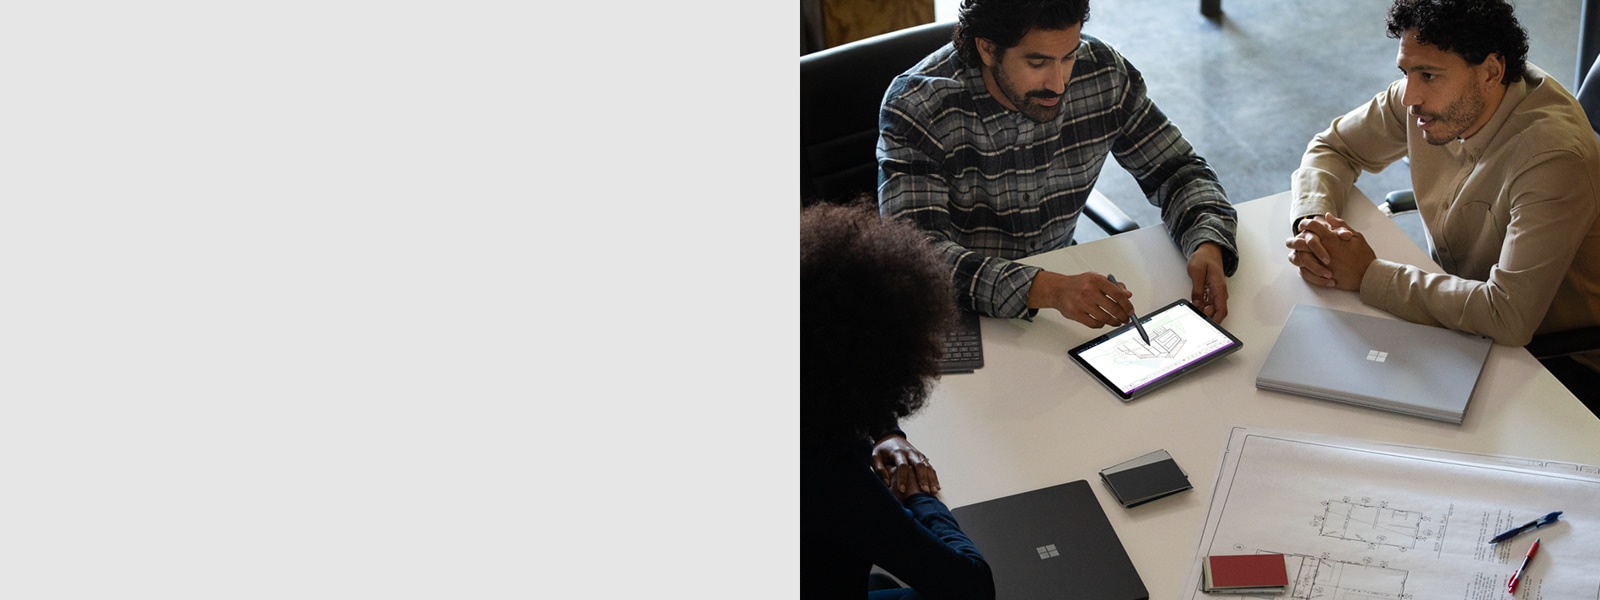 Commercial contextual image of a group of co-workers collaborating on Surface Go 2 in OneNote along with Surface Book 3 and Surface Pro X